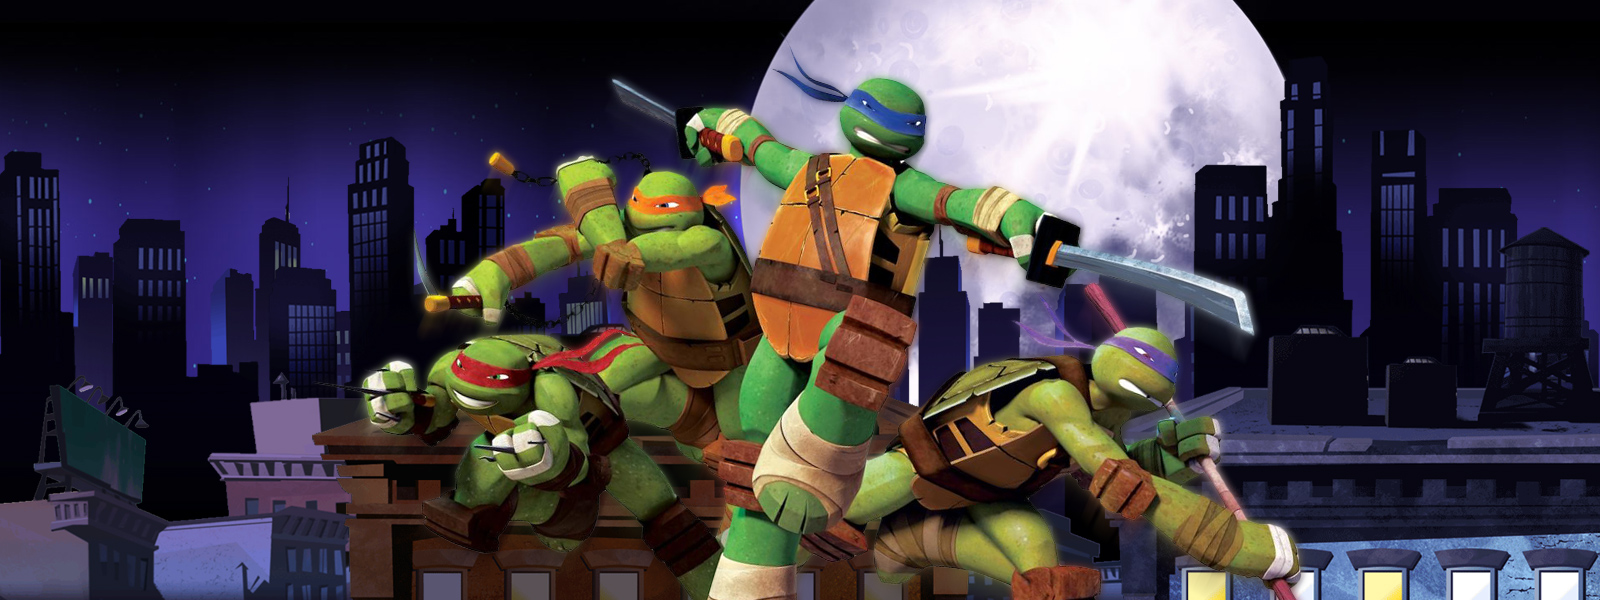 New TMNT Game from Activision